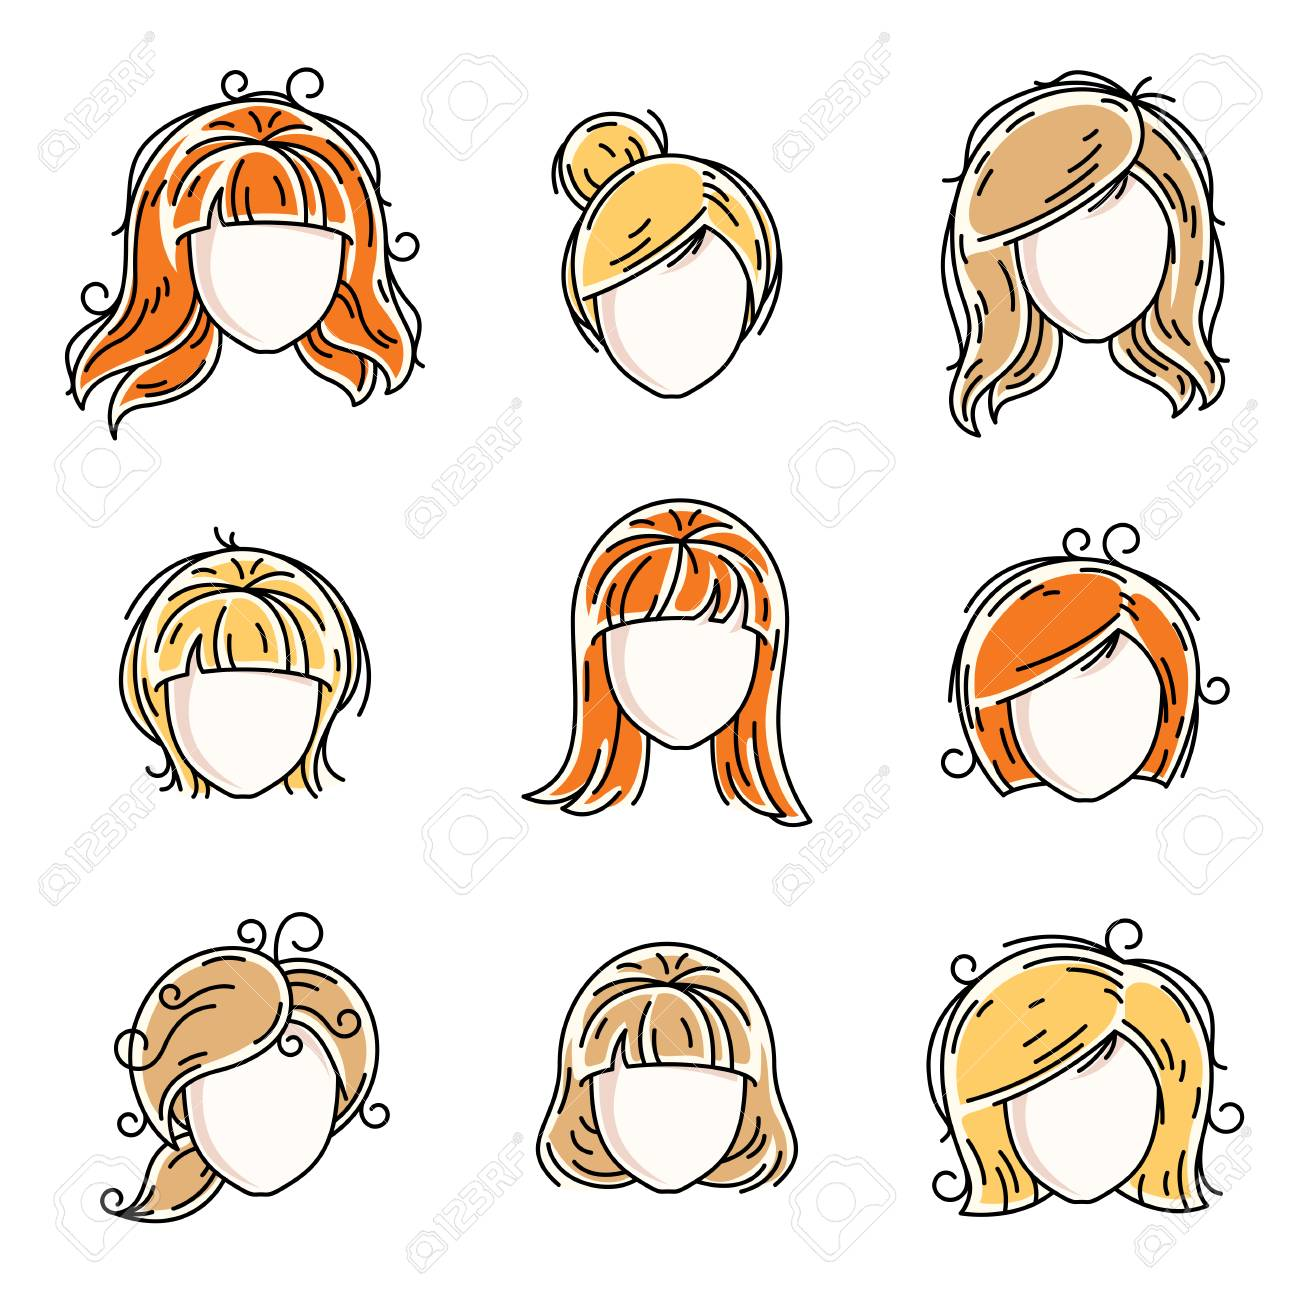 Collection Of Women Faces Human Heads Diverse Vector Characters Royalty Free Cliparts Vectors And Stock Illustration Image 79544906